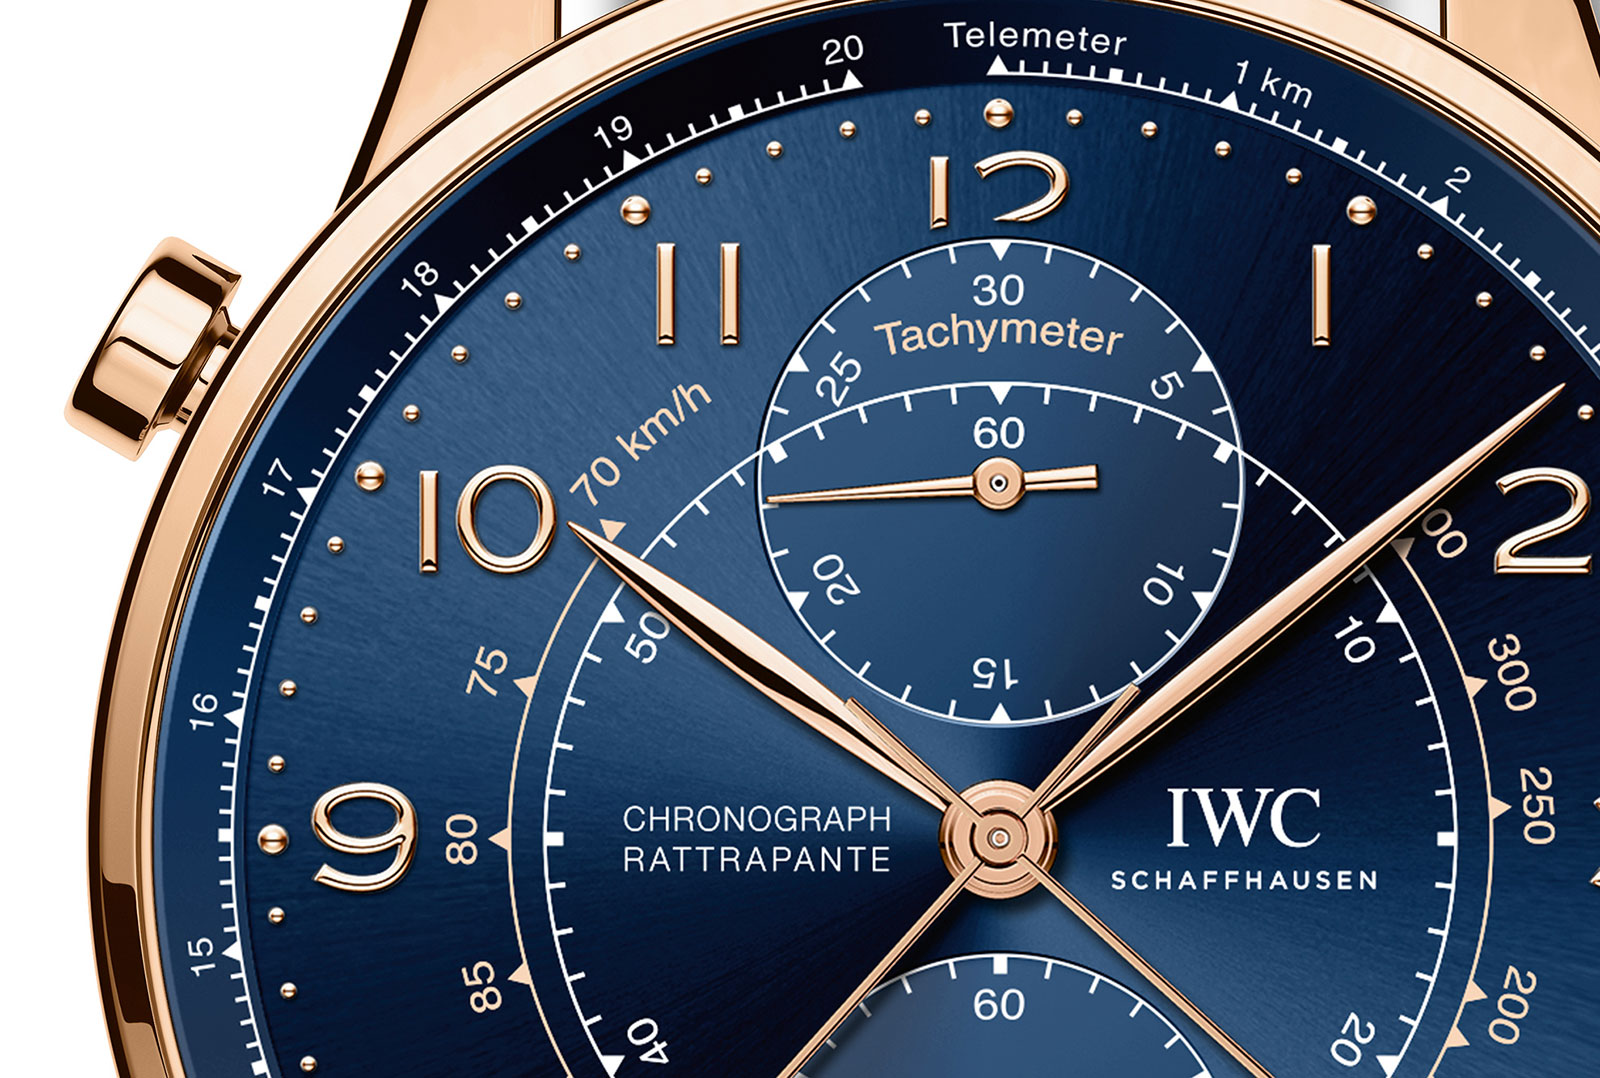 IWC Portugieser Chronograph Rattrapante Milan Boutique 371215-3